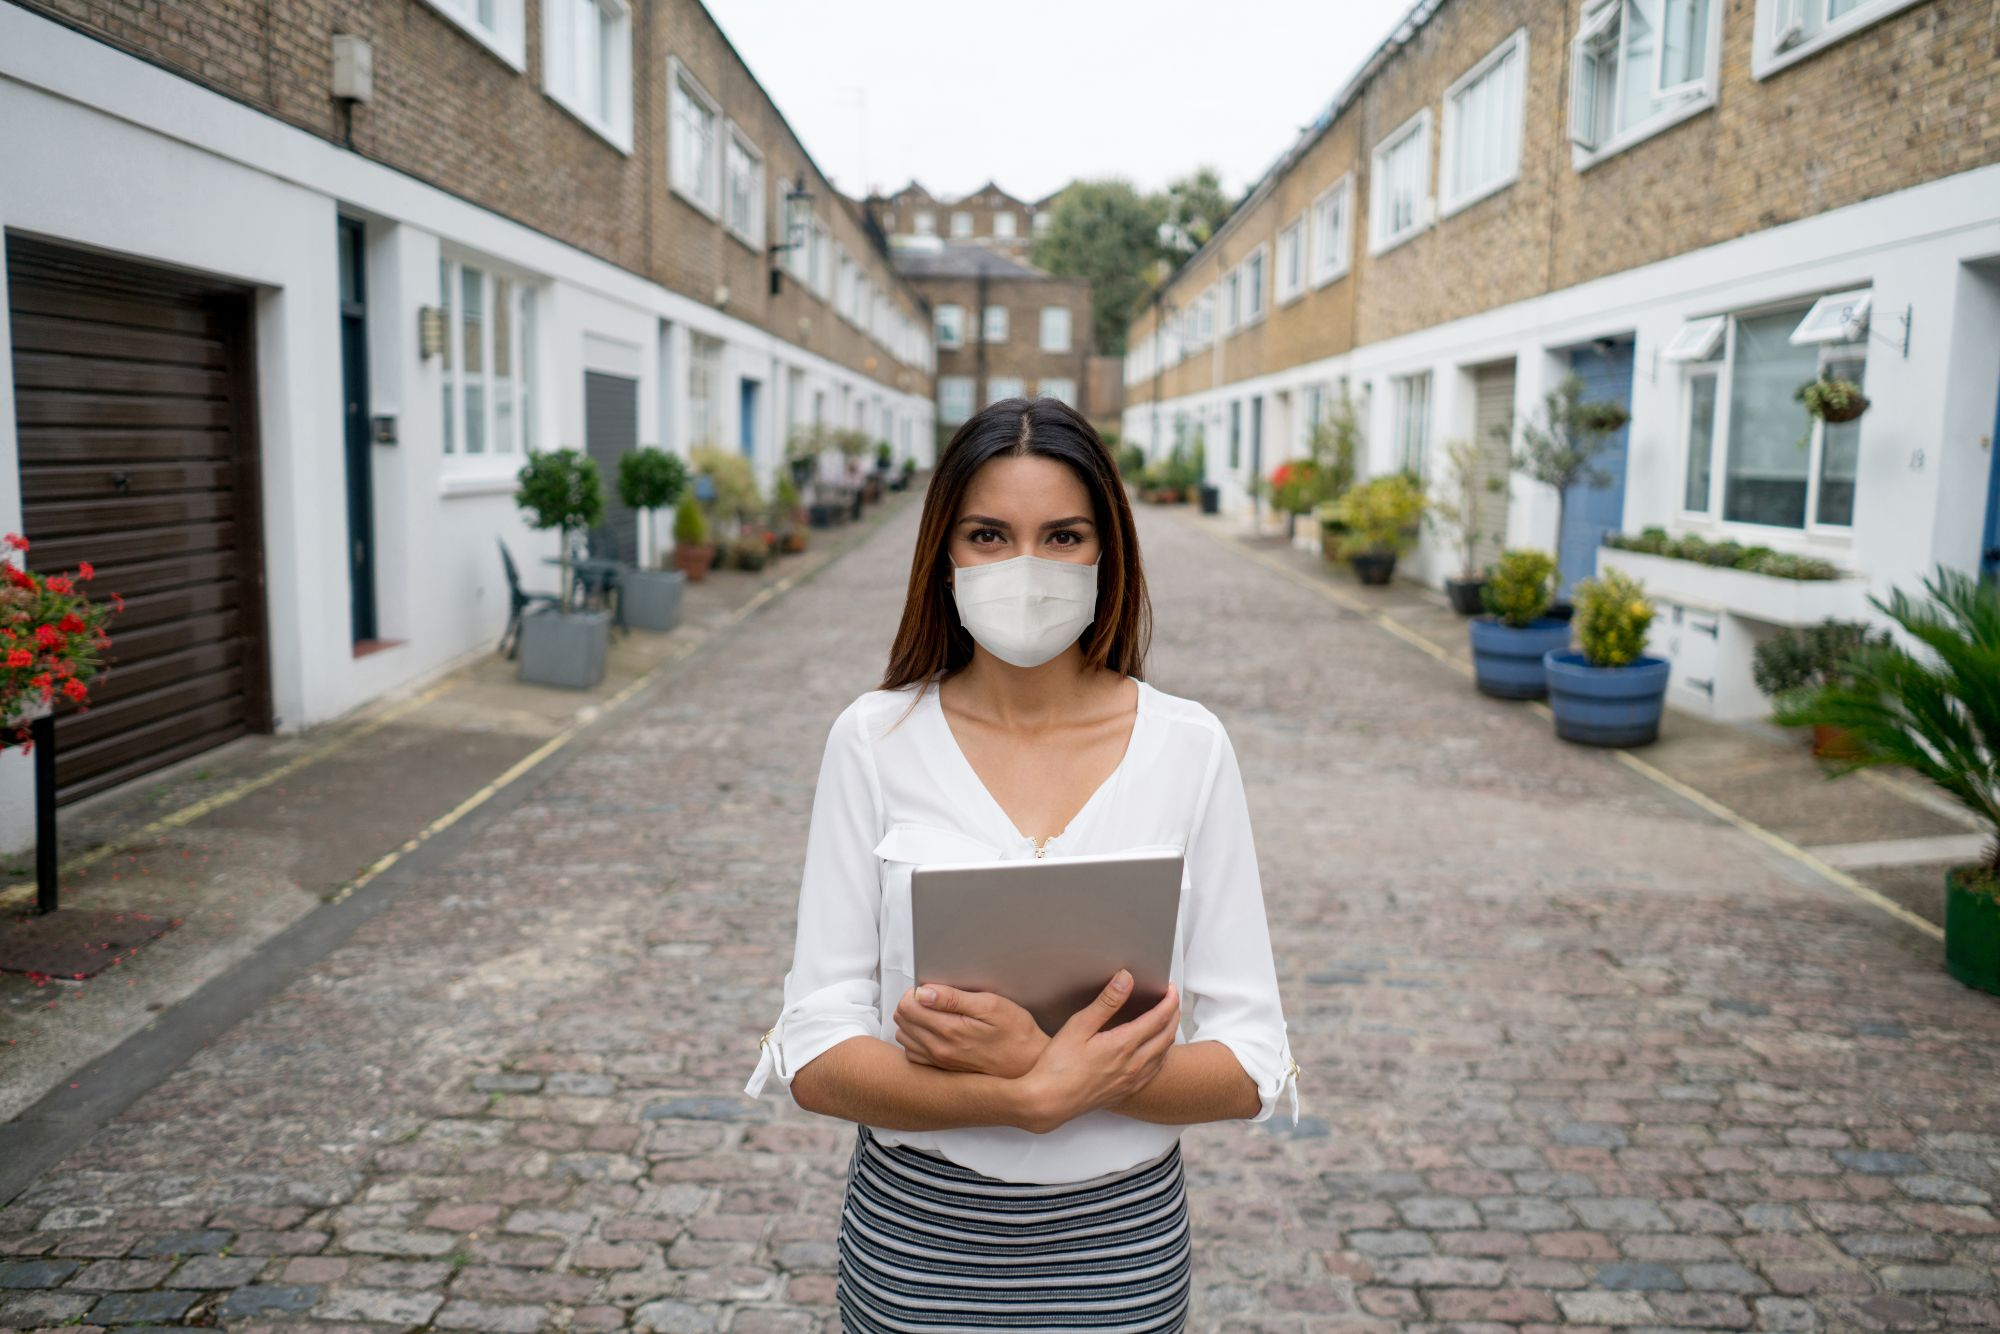 Portrait of a real estate agent wearing a facemask while showing houses during the COVID-19 pandemic - Loralee Wood | Las Vegas Realtor